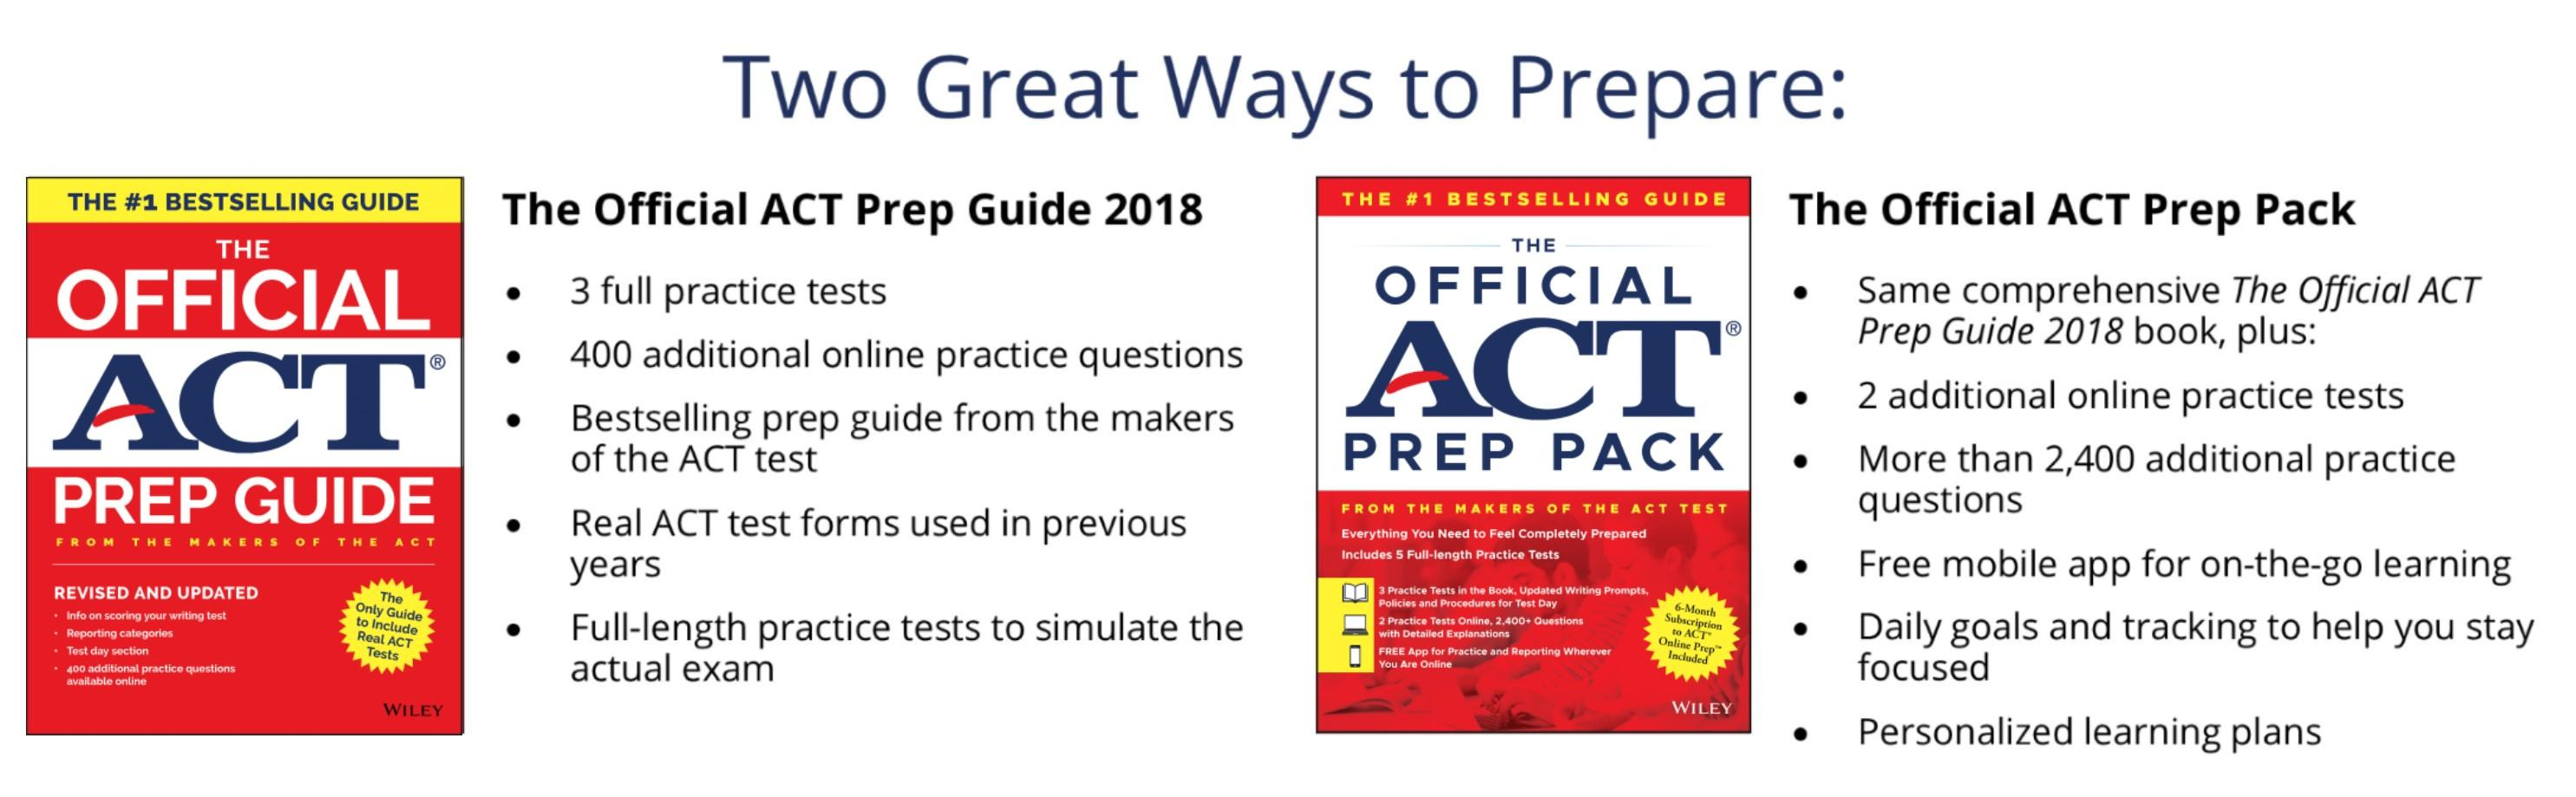 ACT, Official ACT, ACT Prep Guide, ACT 2018